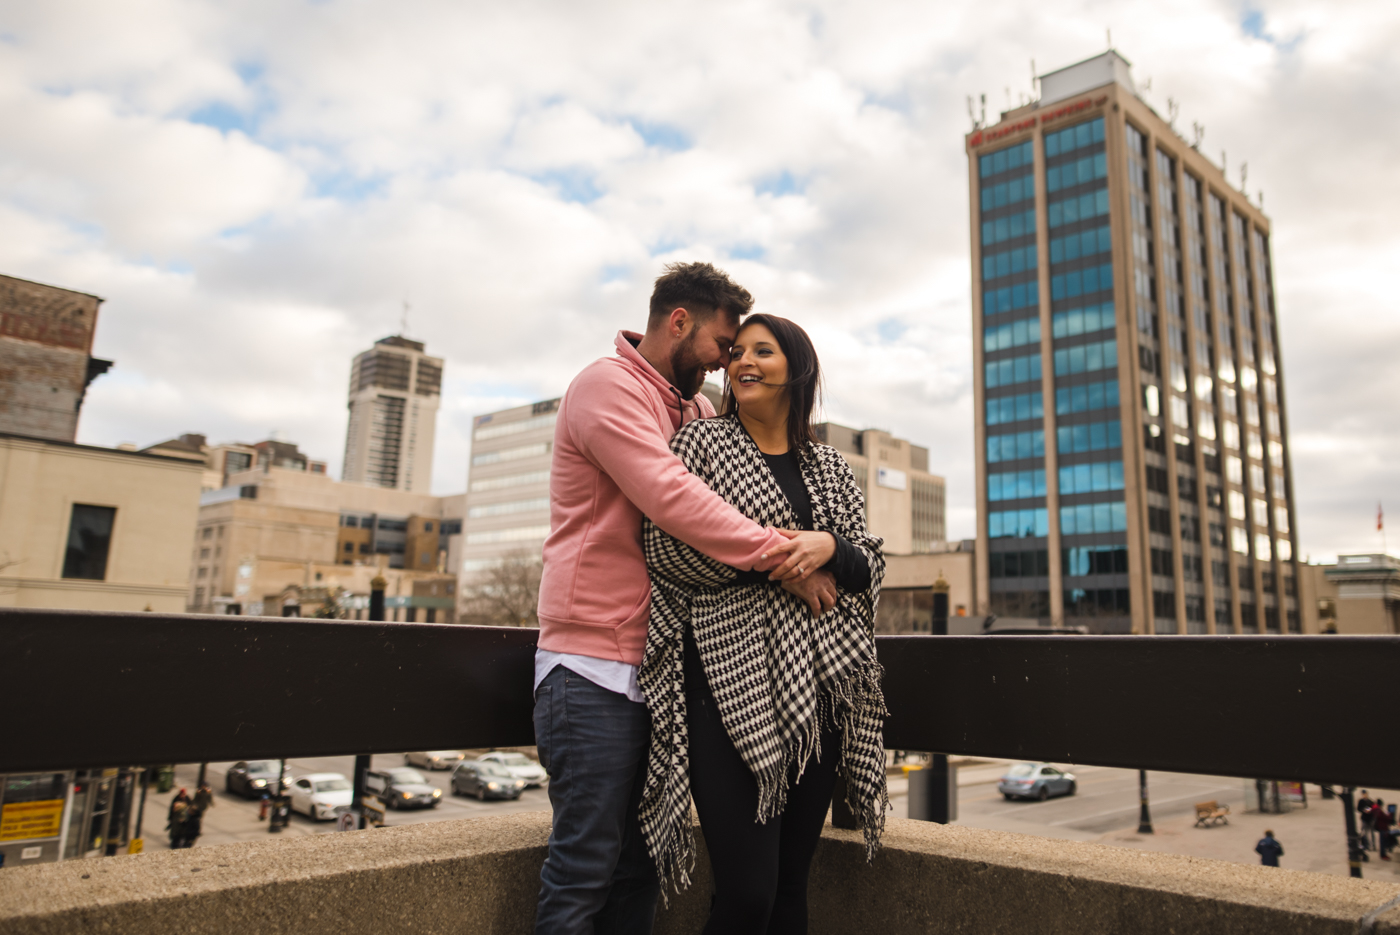 Alex & Michelle's Downtown Hamilton Gore Park James Street North King Street East Engagement Session Aidan Hennebry Urban Wedding Photographer Hush Hush Photography & Film-17.jpg